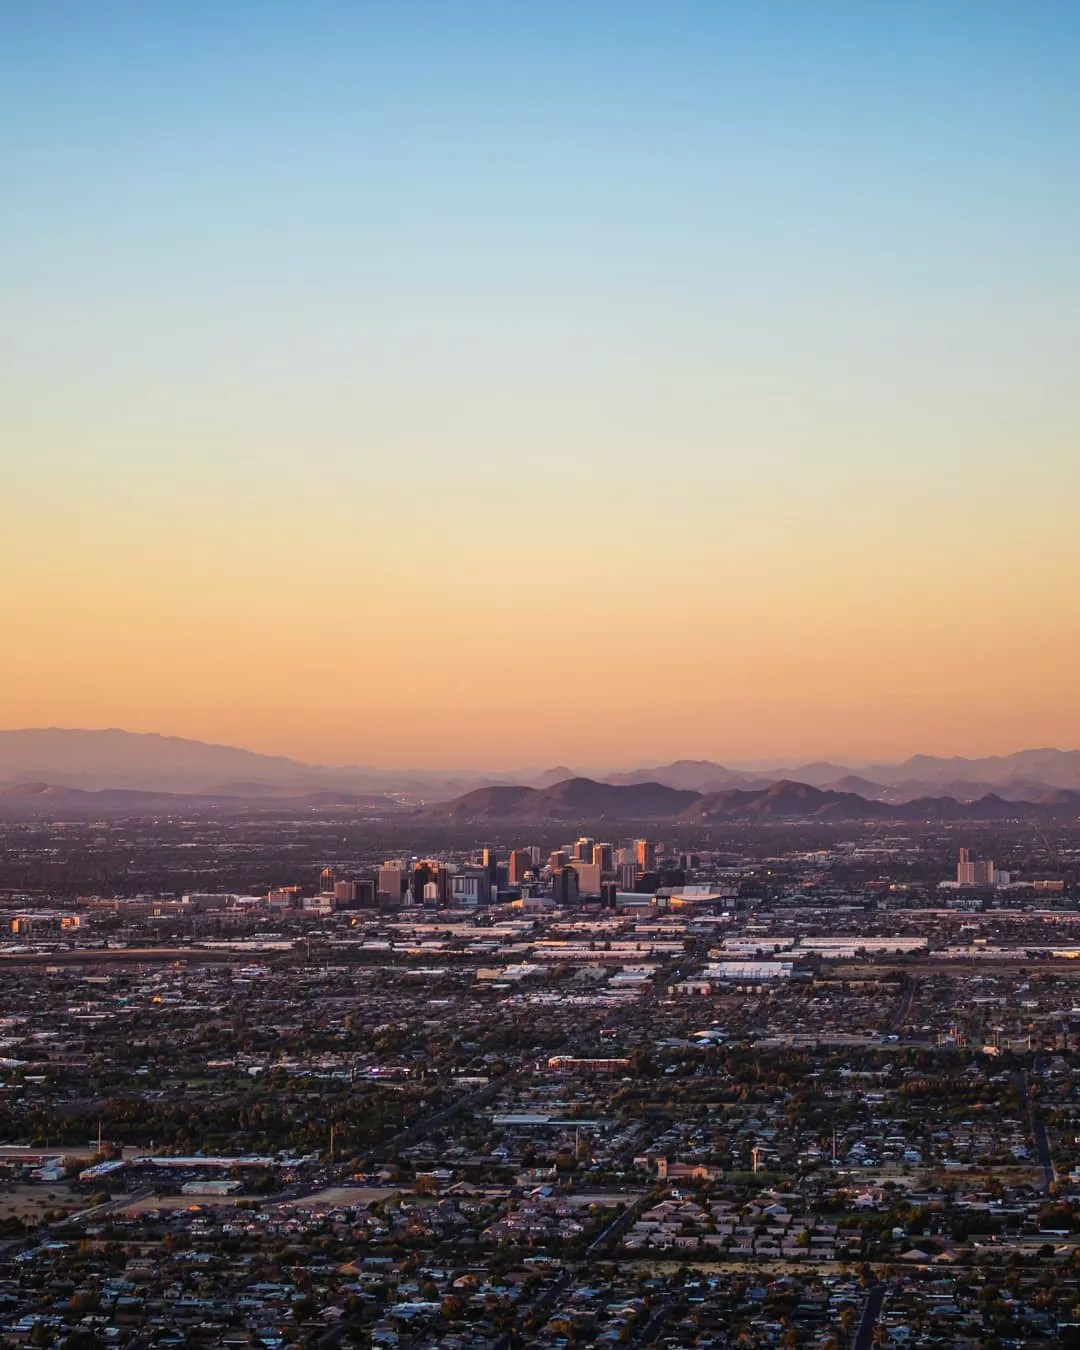 Skyline of mountains and buildings in Phoenix, AZ. Photo by Instagram user @maverick_shots